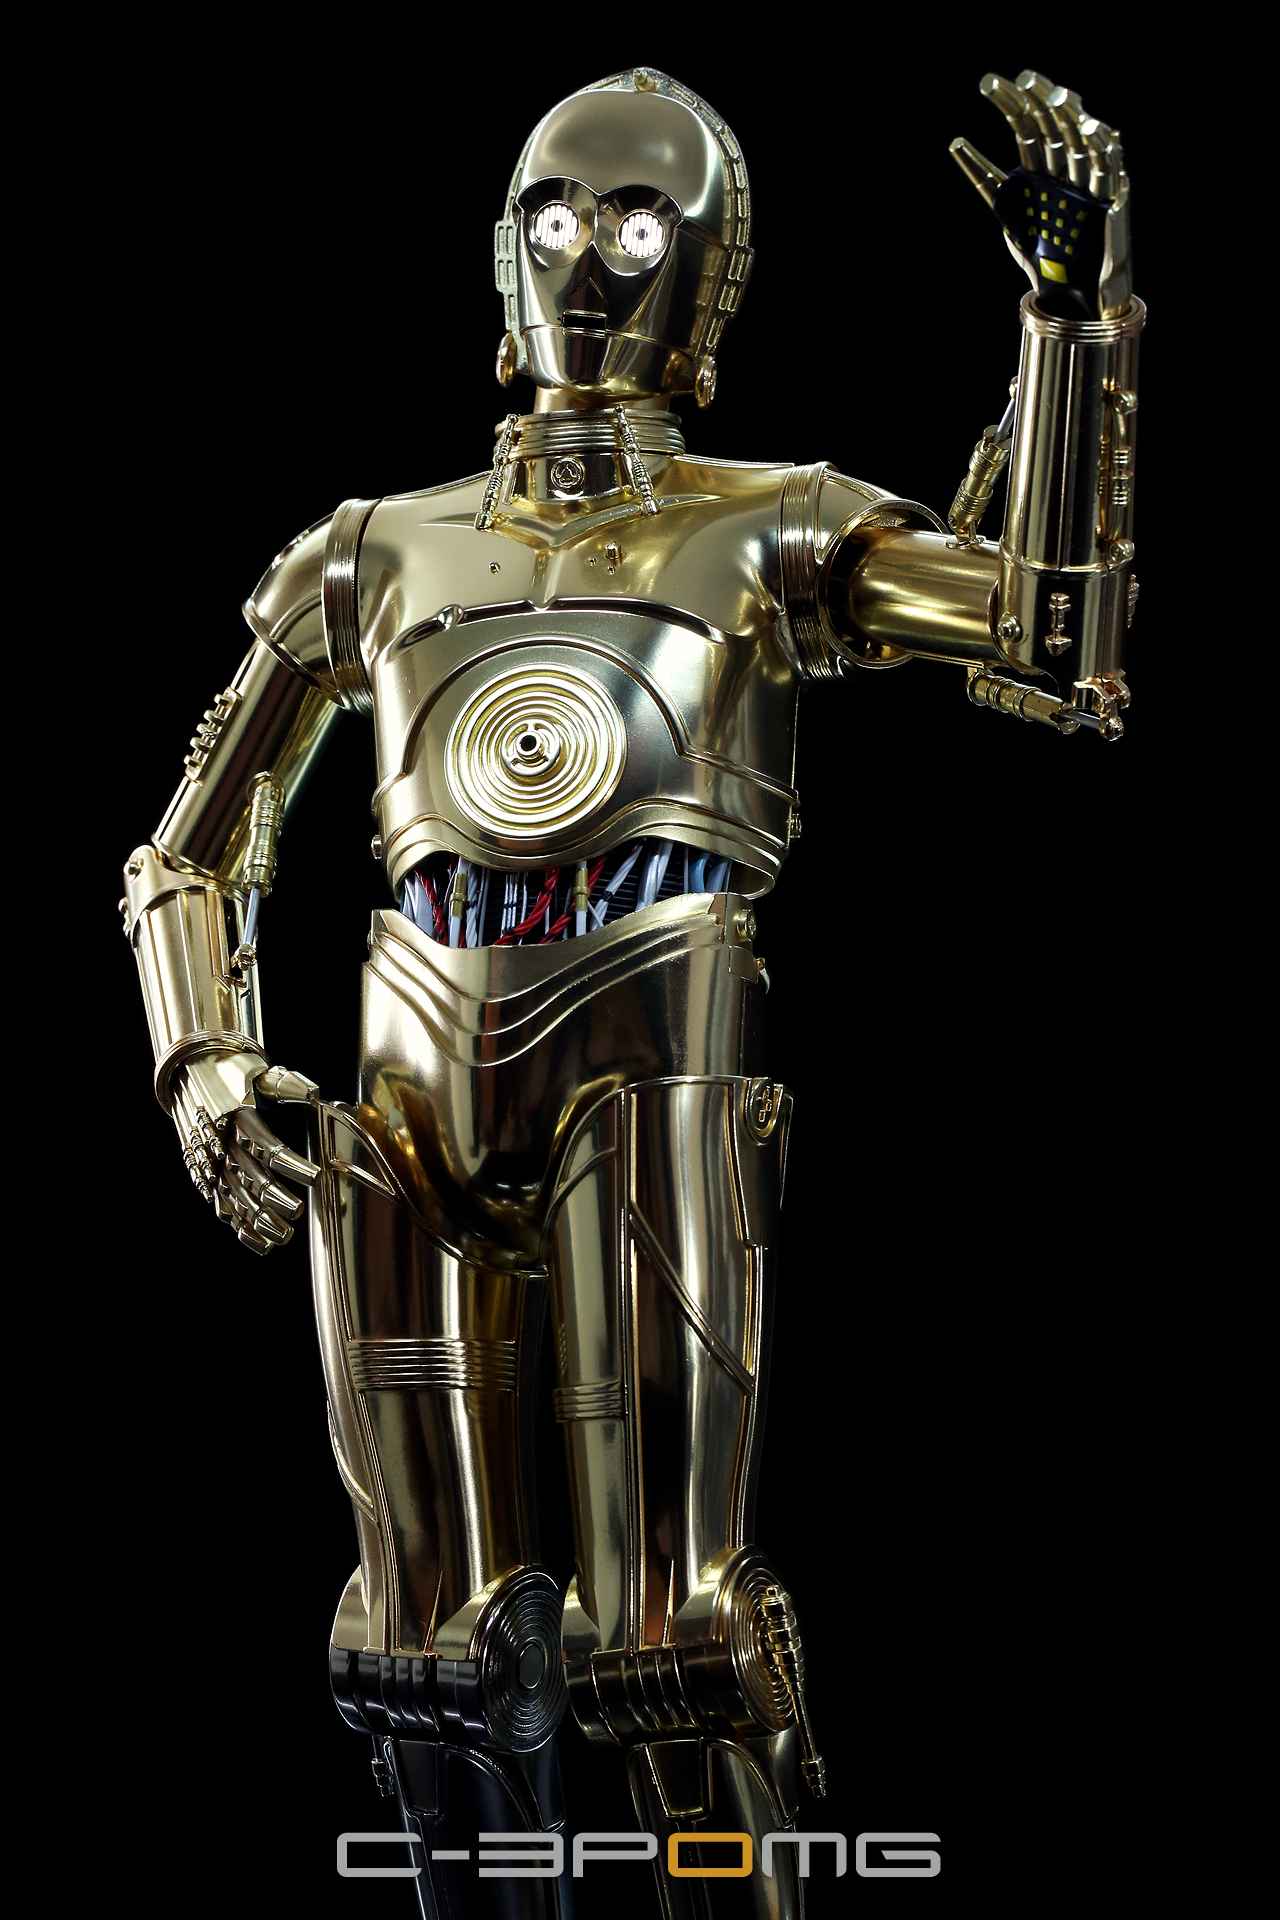 [Bandai] Star Wars: C-3PO - Perfect Model 1/6 scale - LANÇADO!!! - Página 2 C-3PO1032_zps9730caf6